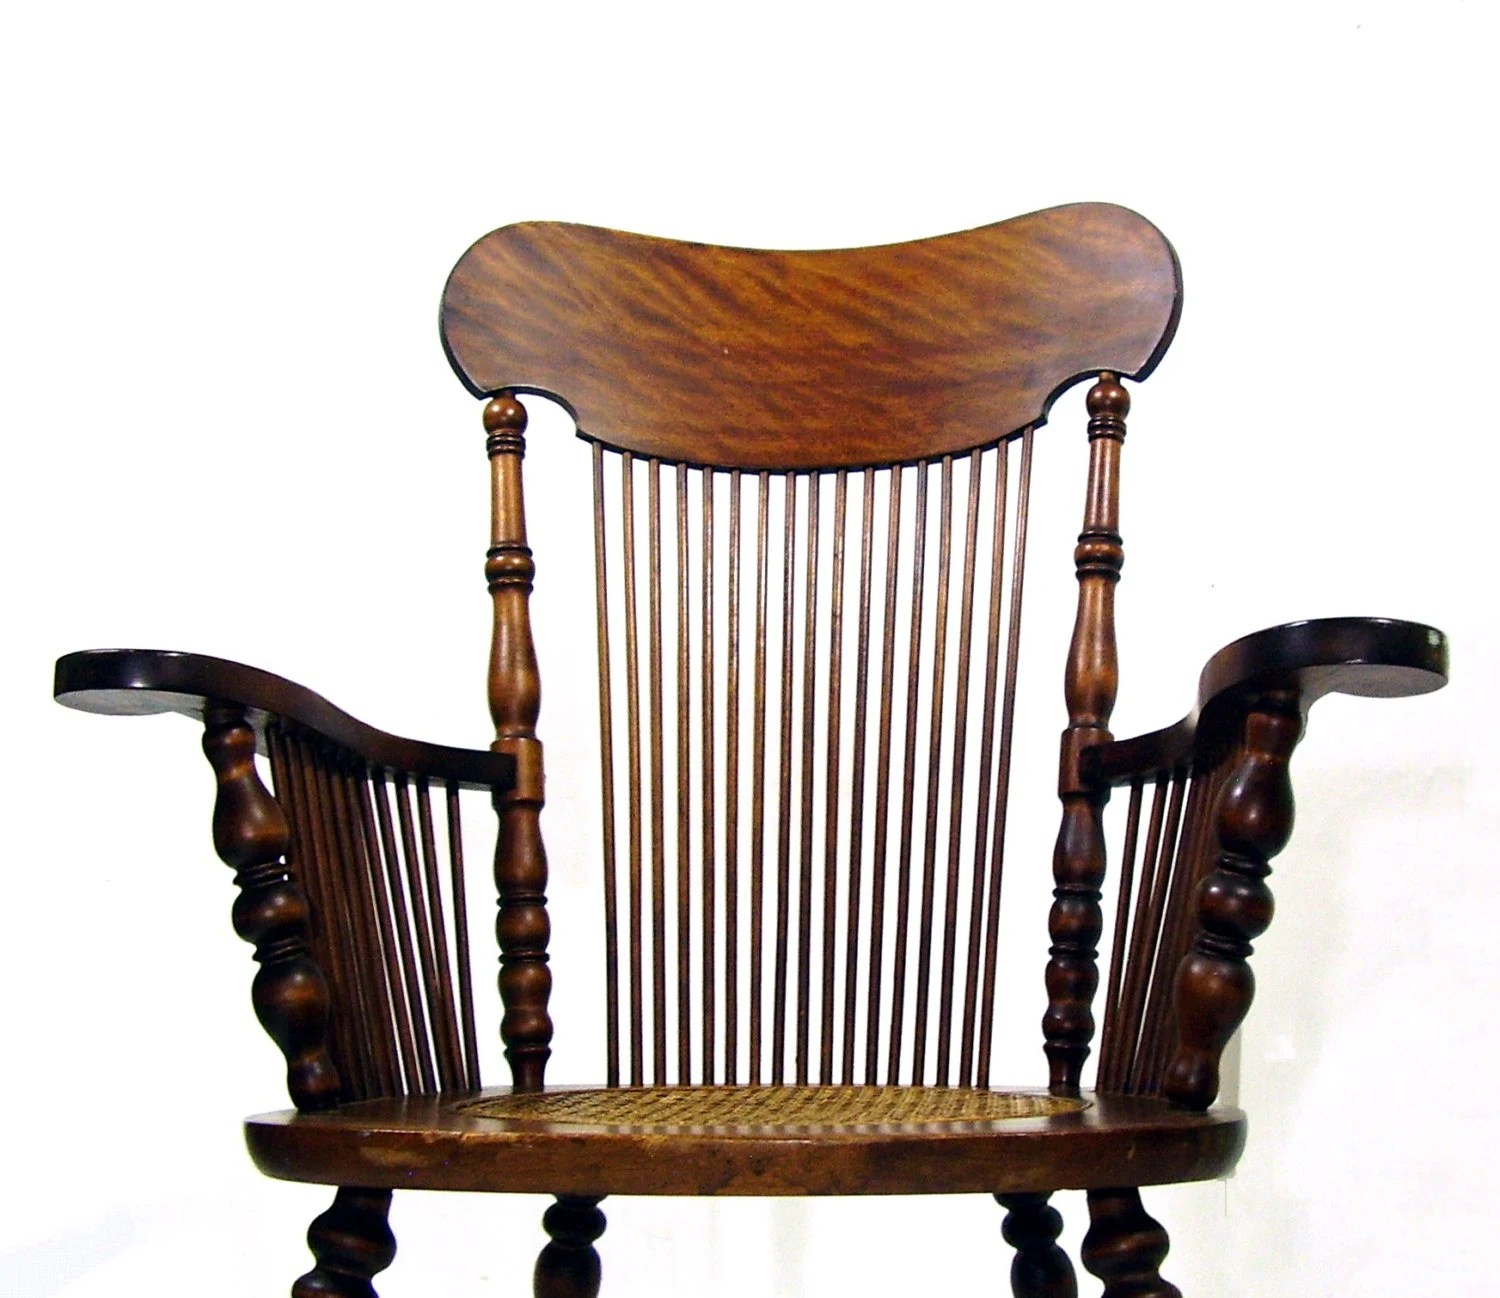 antique rocking chair images of chaise lounge chairs tiger oak wooden rocker cane seat